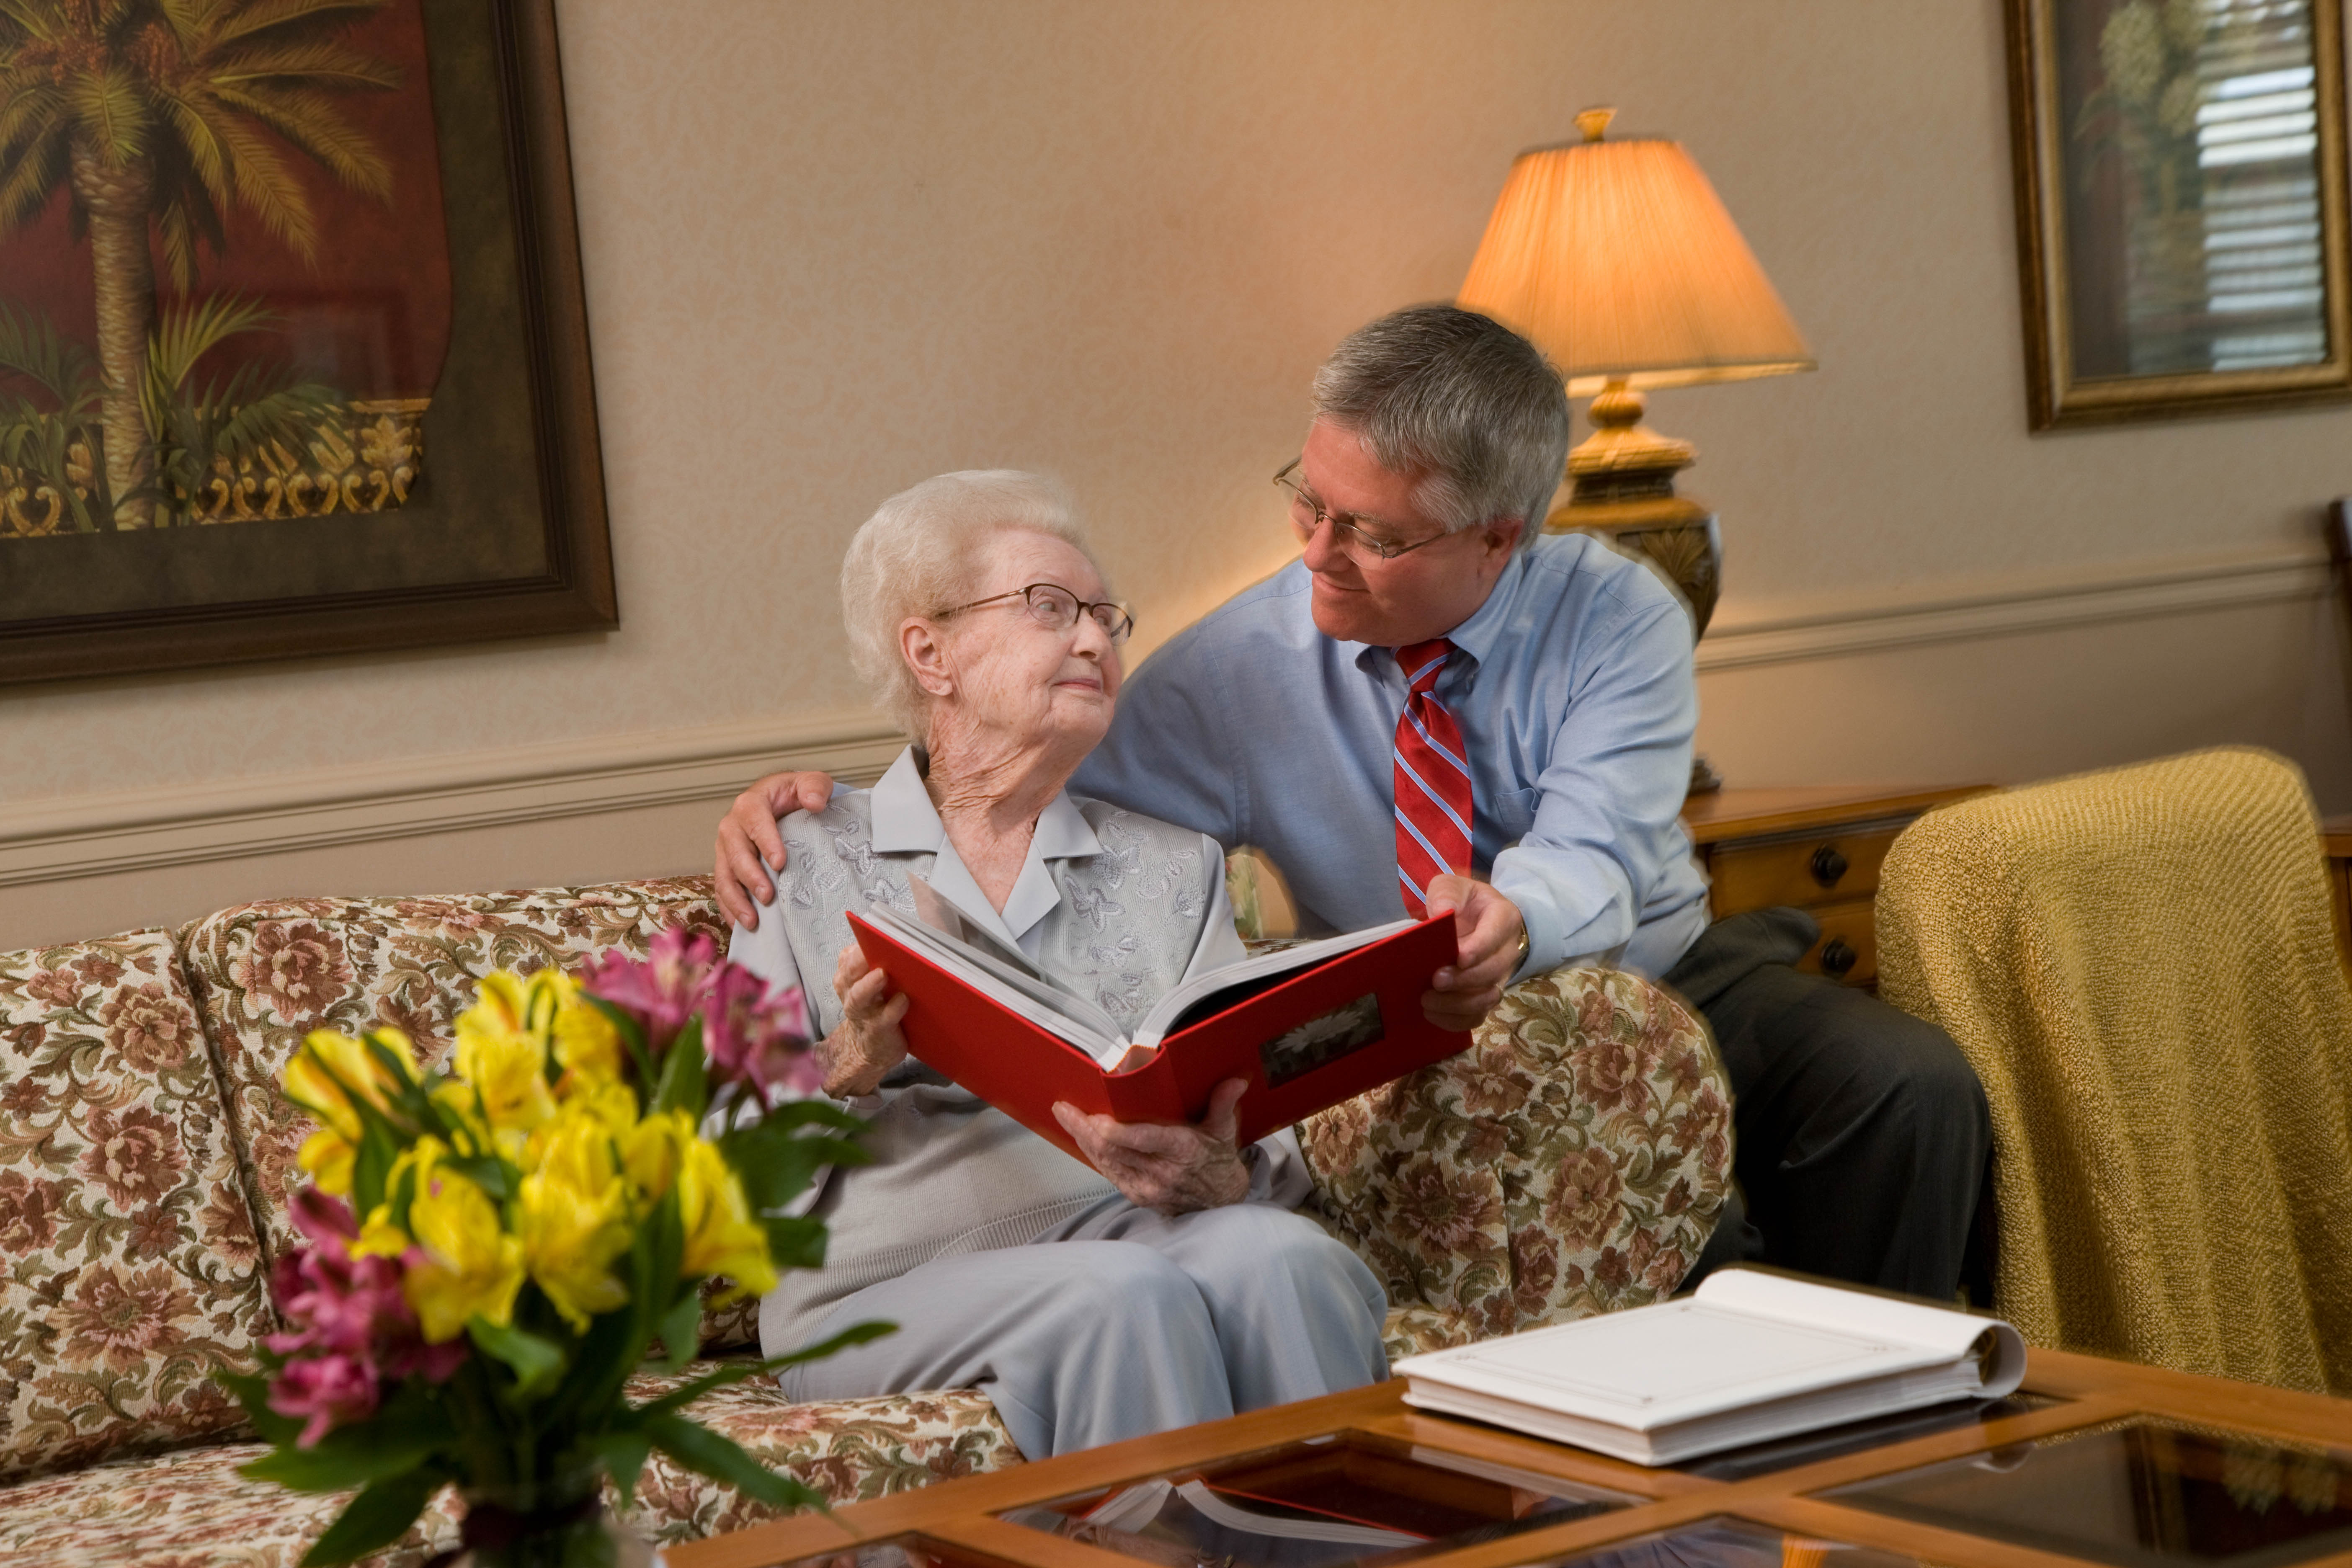 a Hospice Volunteer in Minneapolis comforts an Interim Hospice patient.